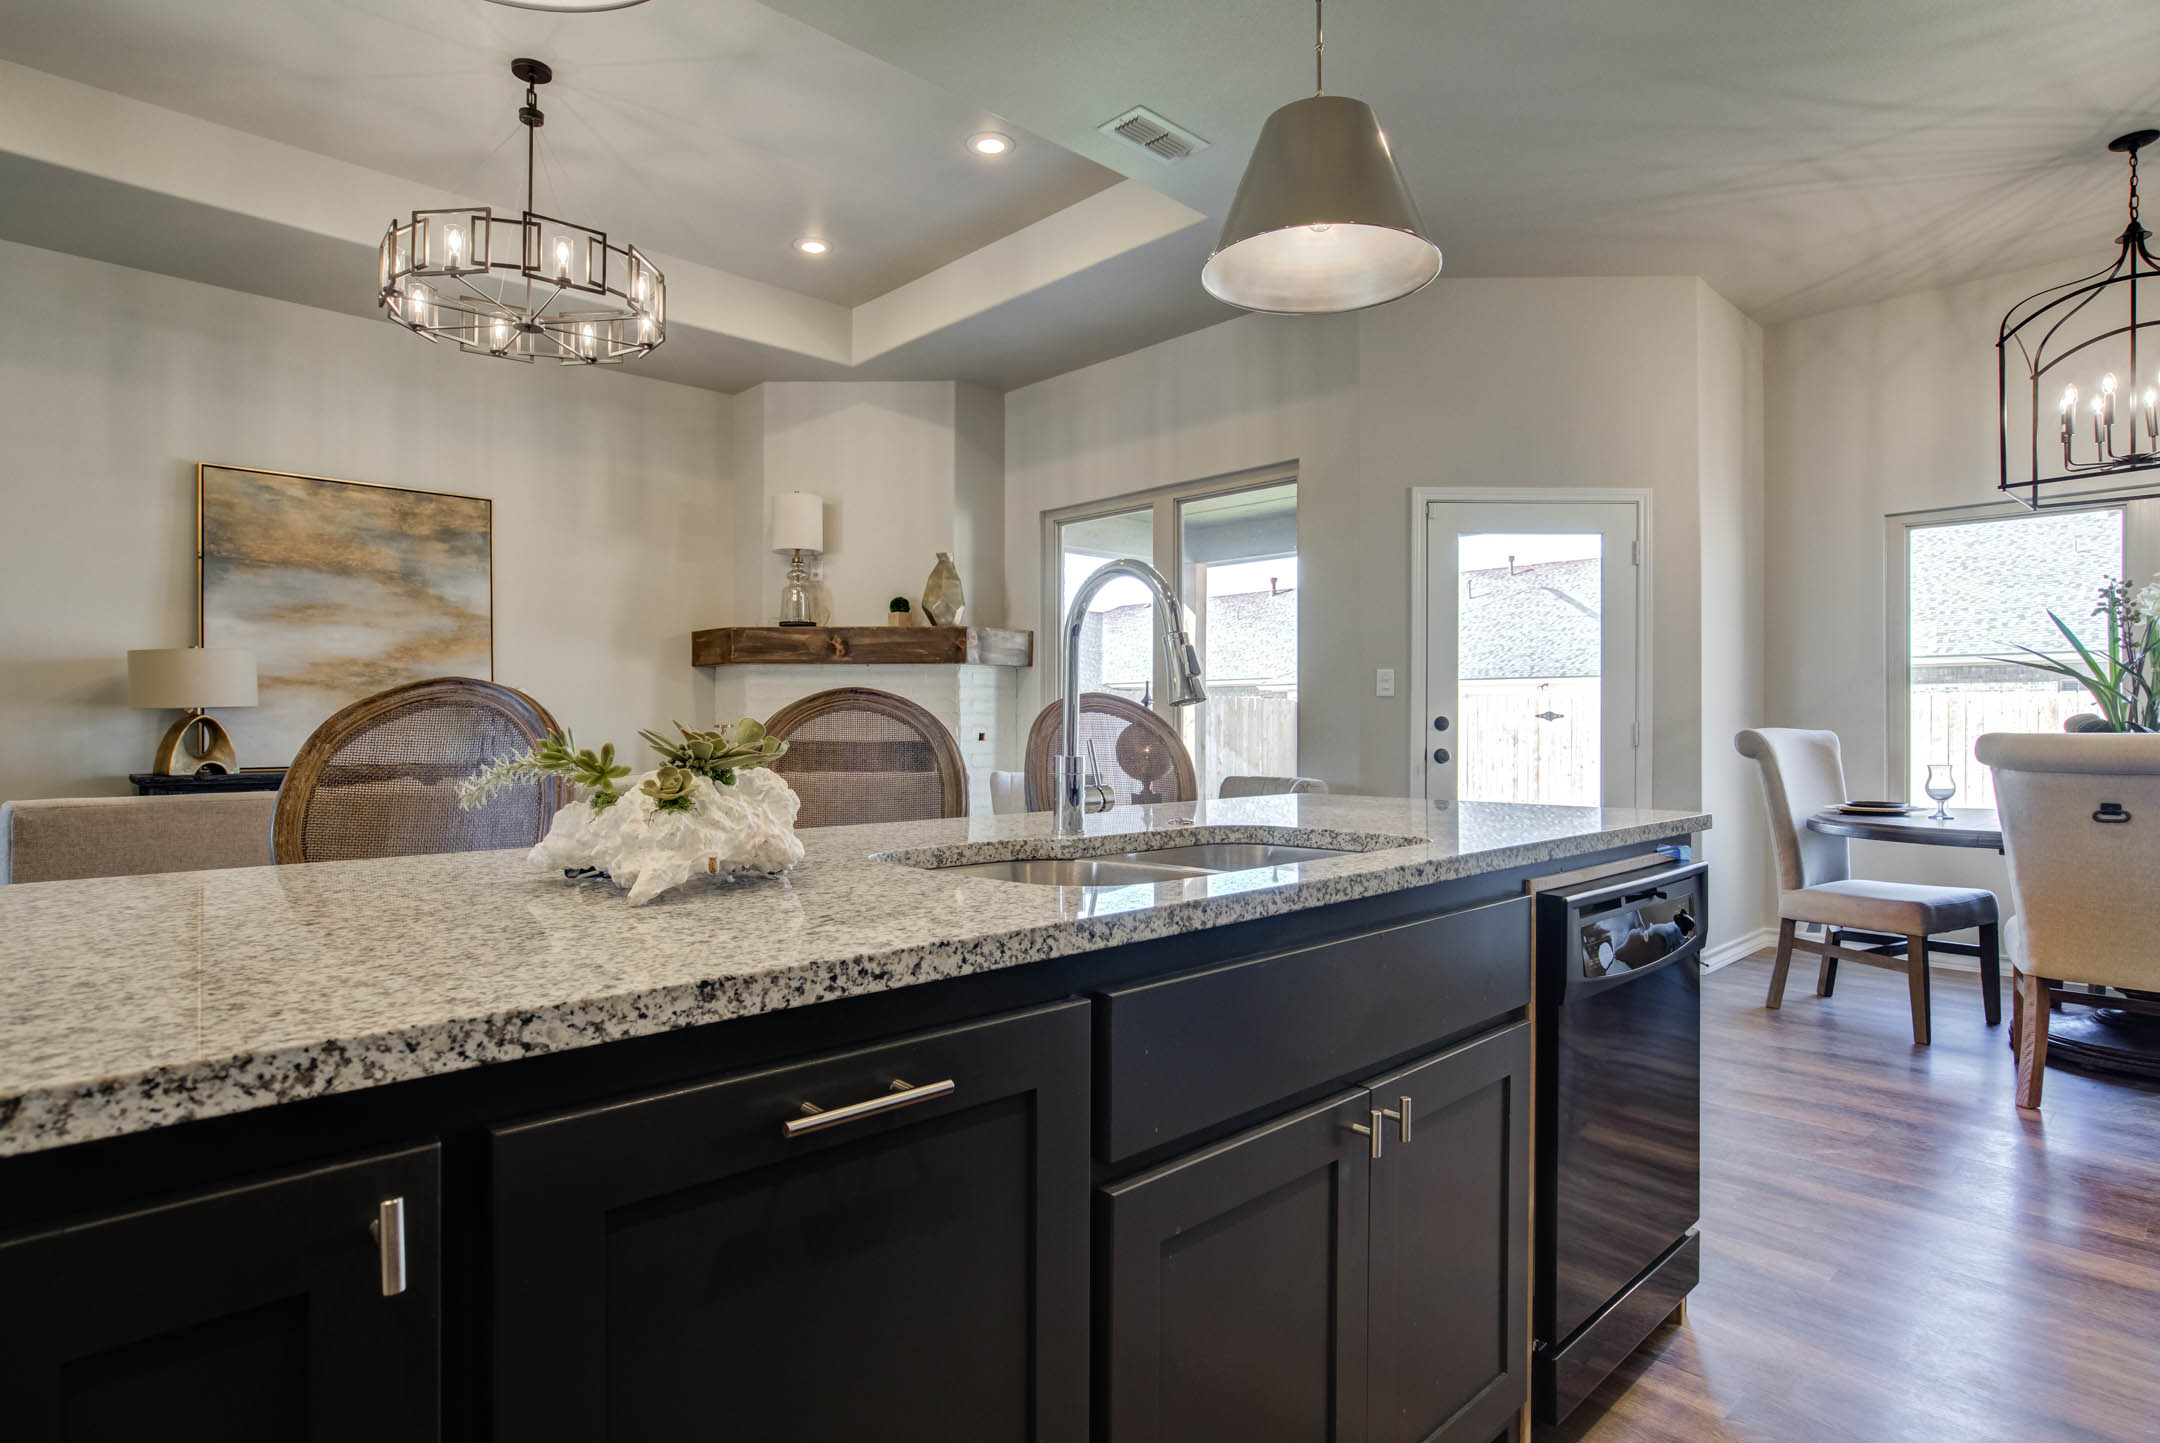 Spacious island and sink in kitchen of new home for sale in Lubbock, Texas.